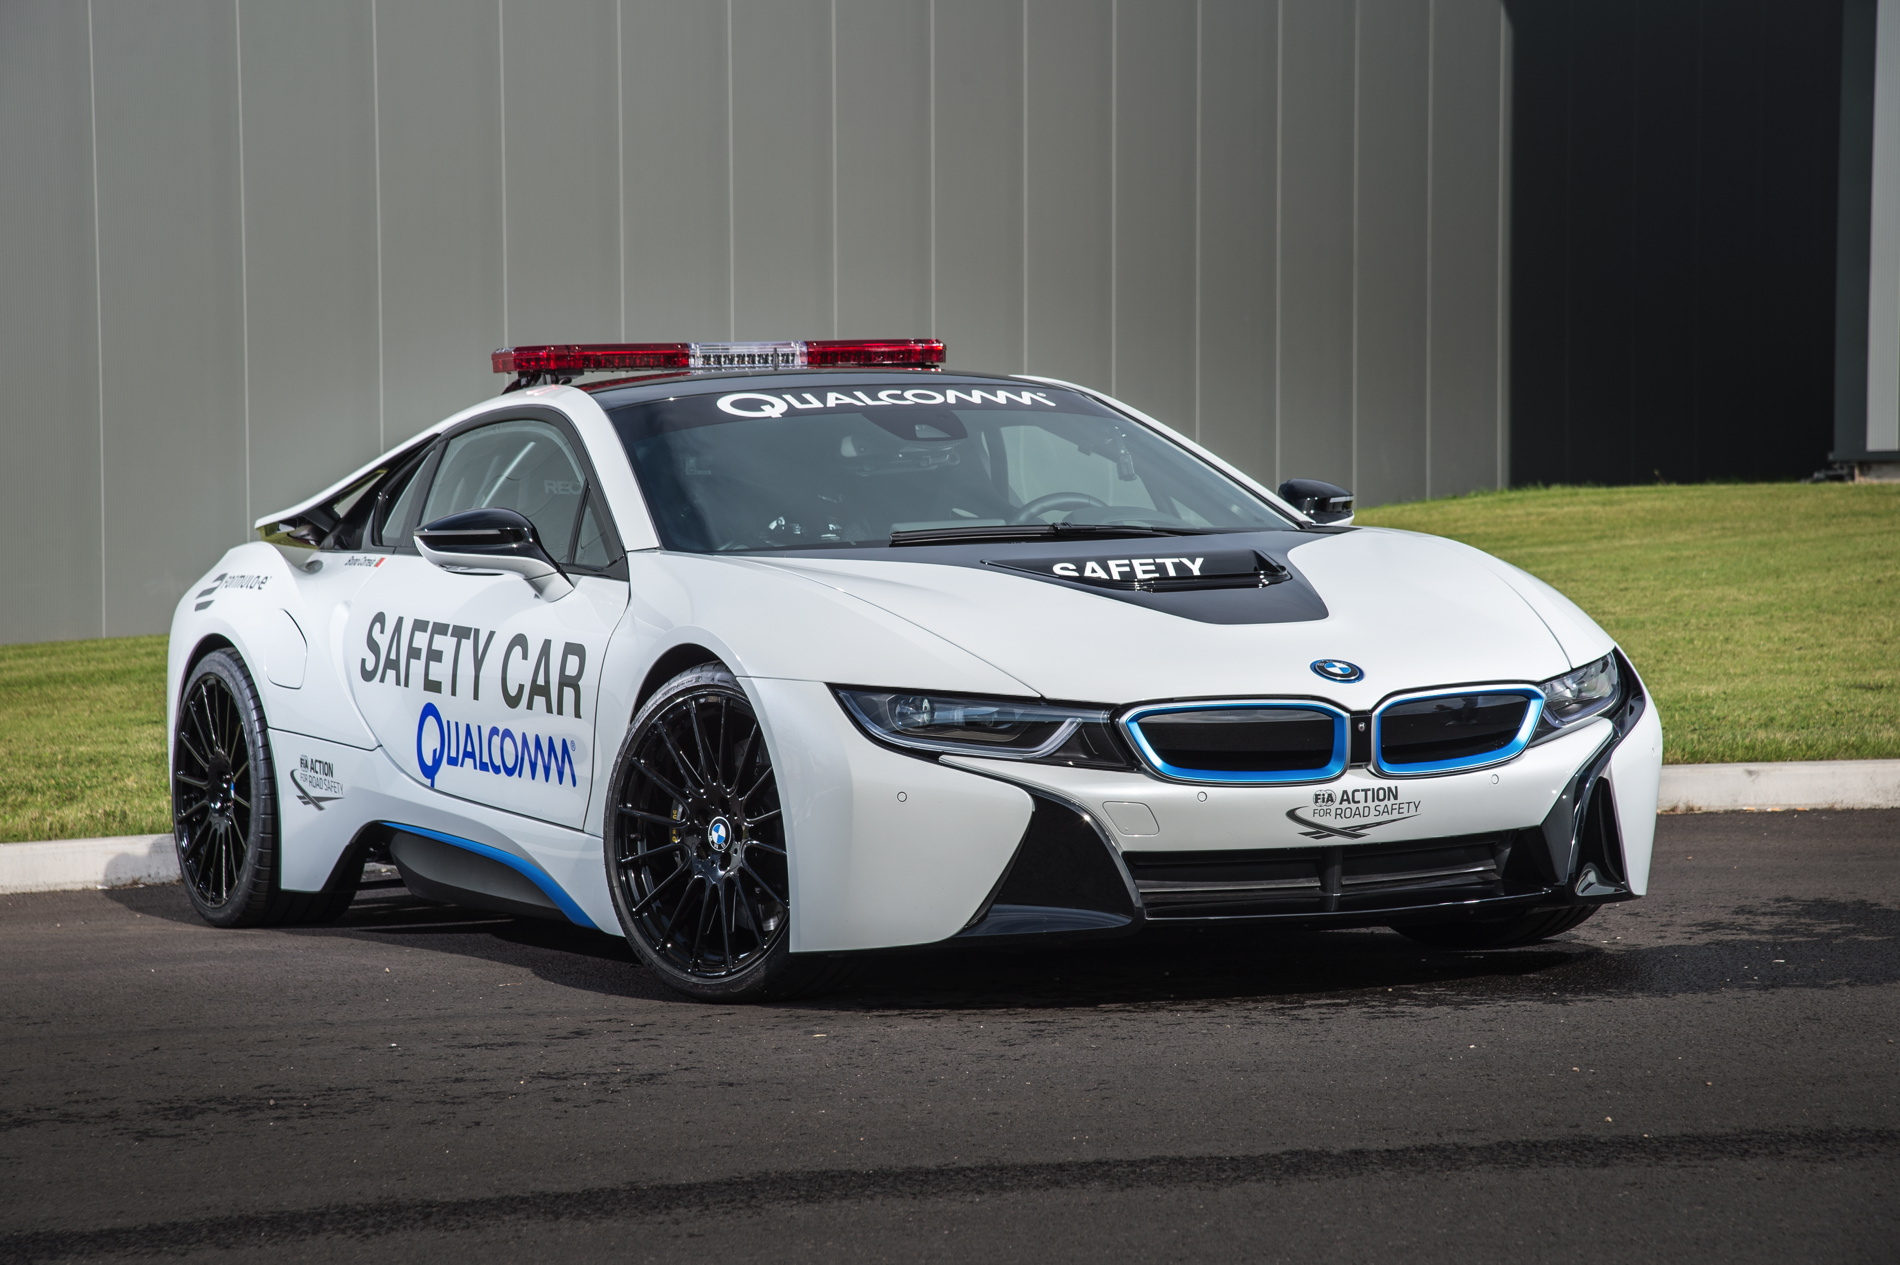 Qualcomm Wirelessly Charges Bmw I8 Safety Car